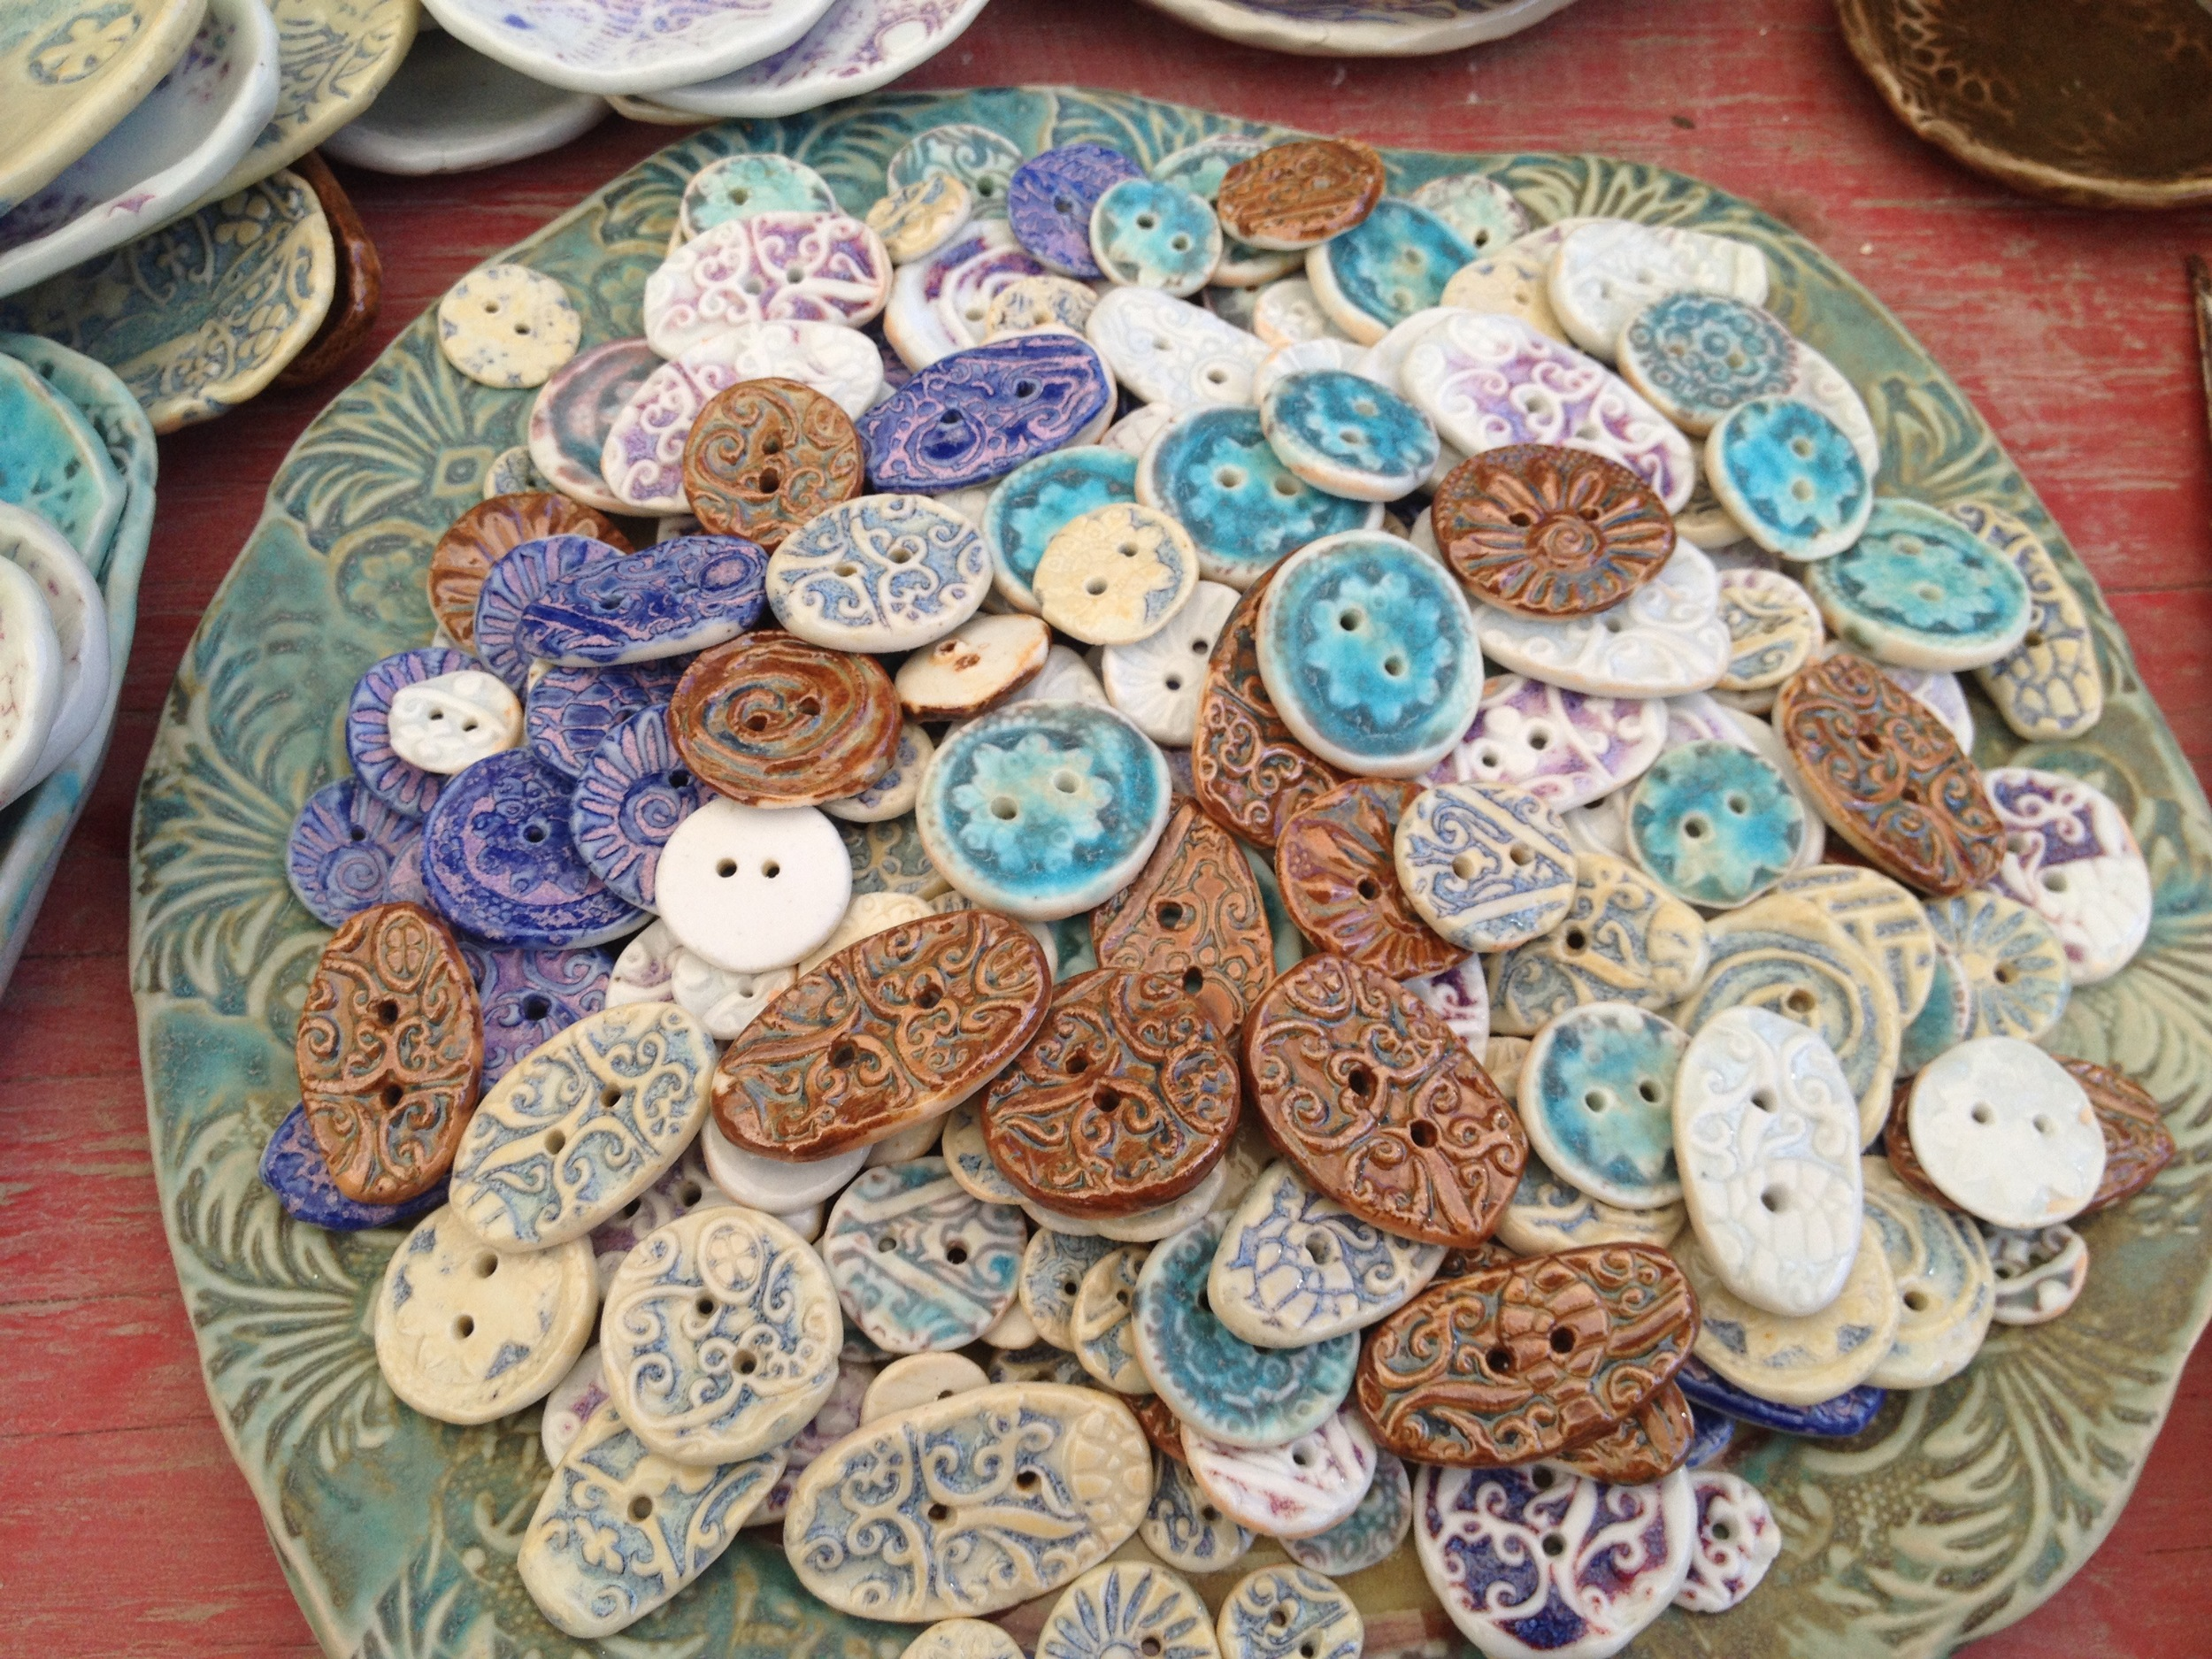 Lovely porcelain buttons!